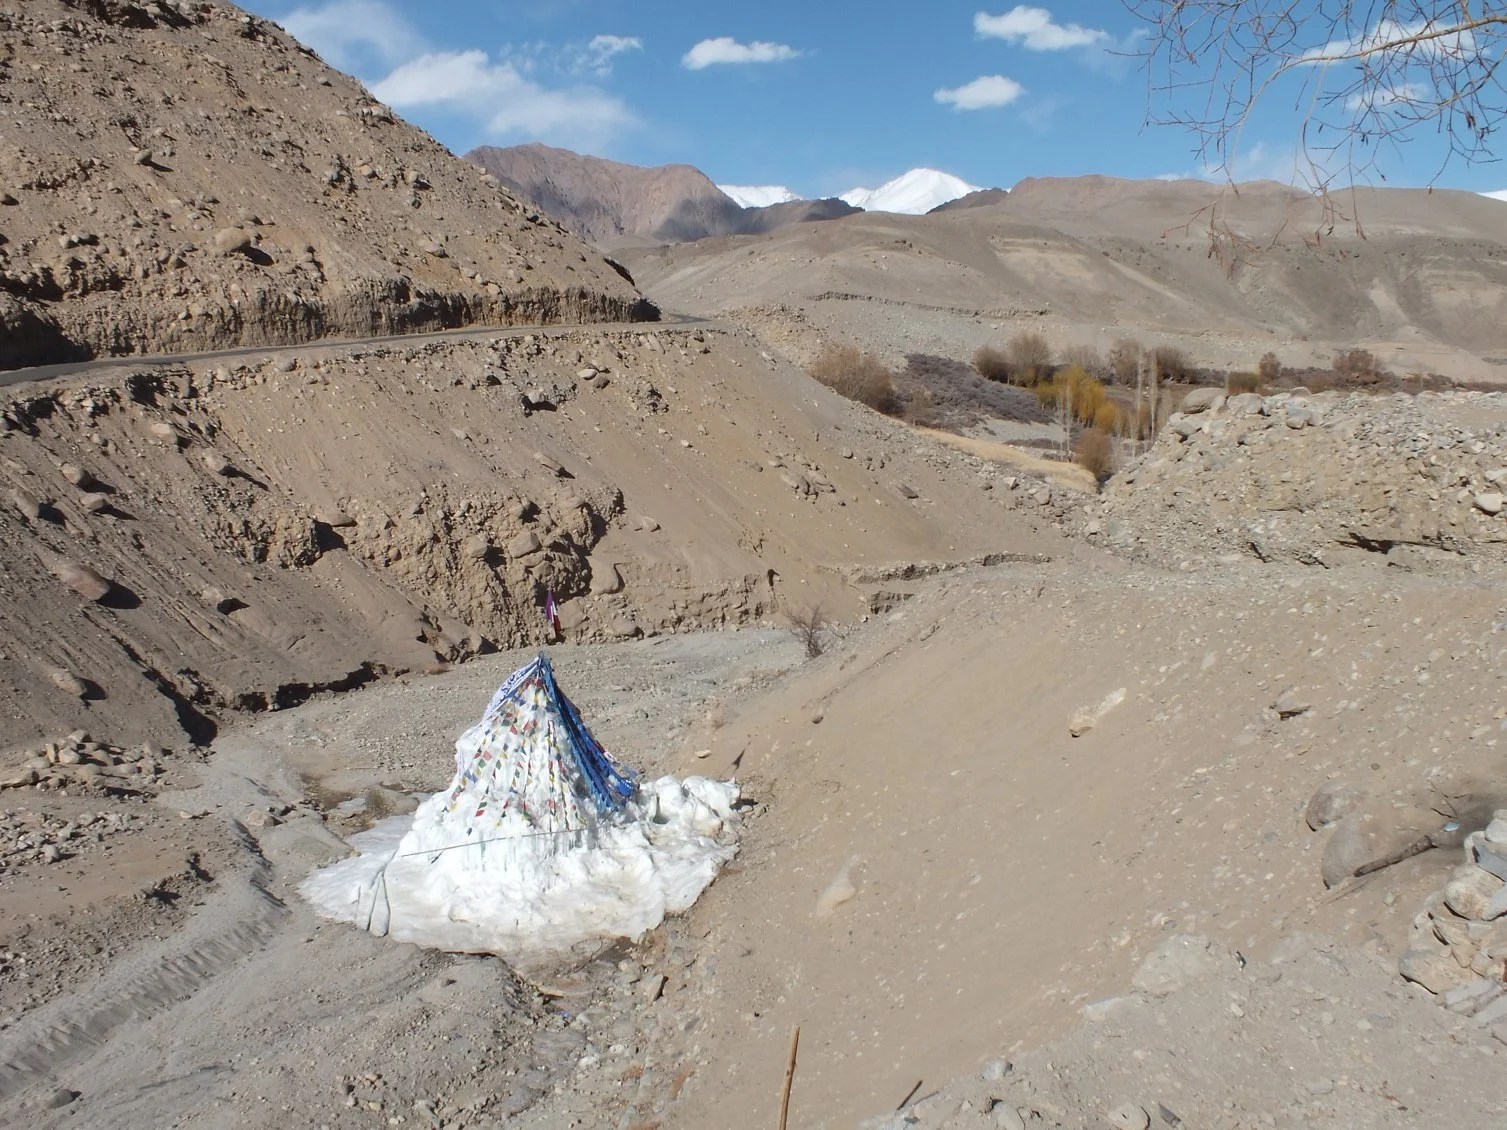 By mid- March all the flat ice on ground had melted, but not Wangchuk's Stupa.